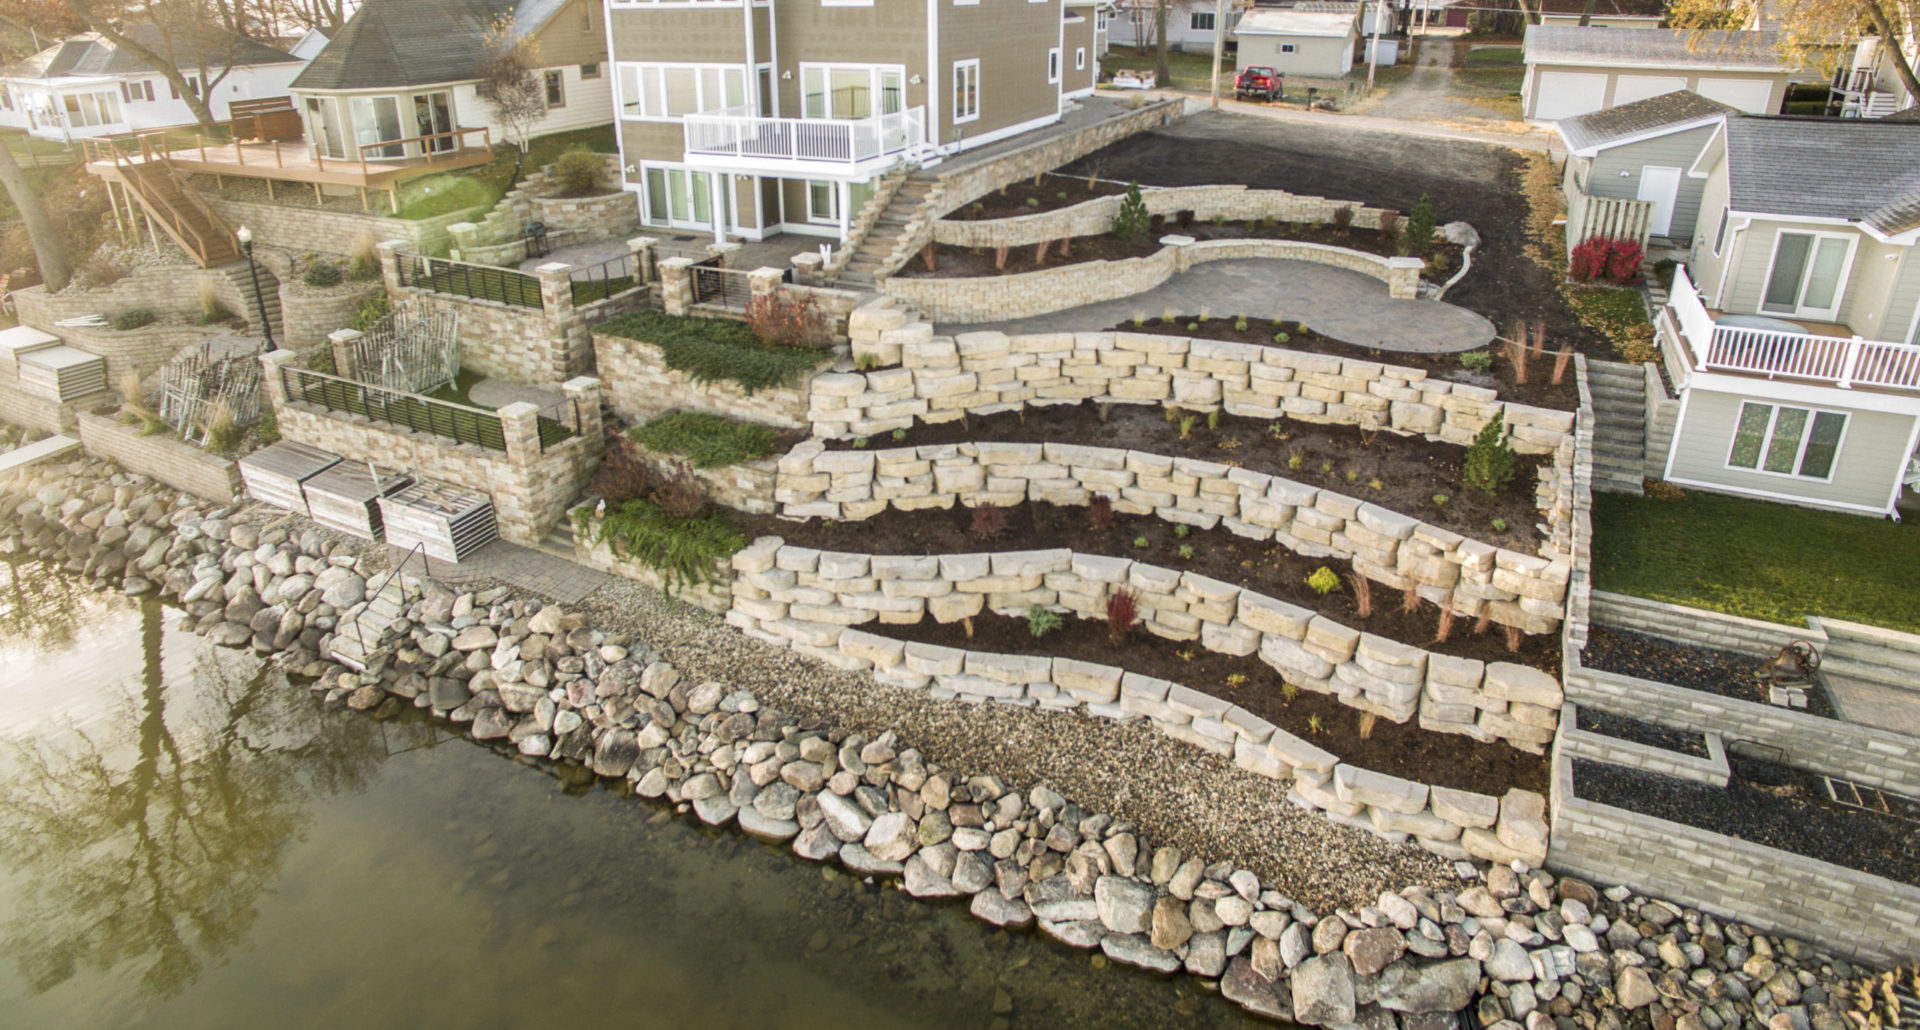 Midland Concrete Choose Midland For The Finest Stone Products To